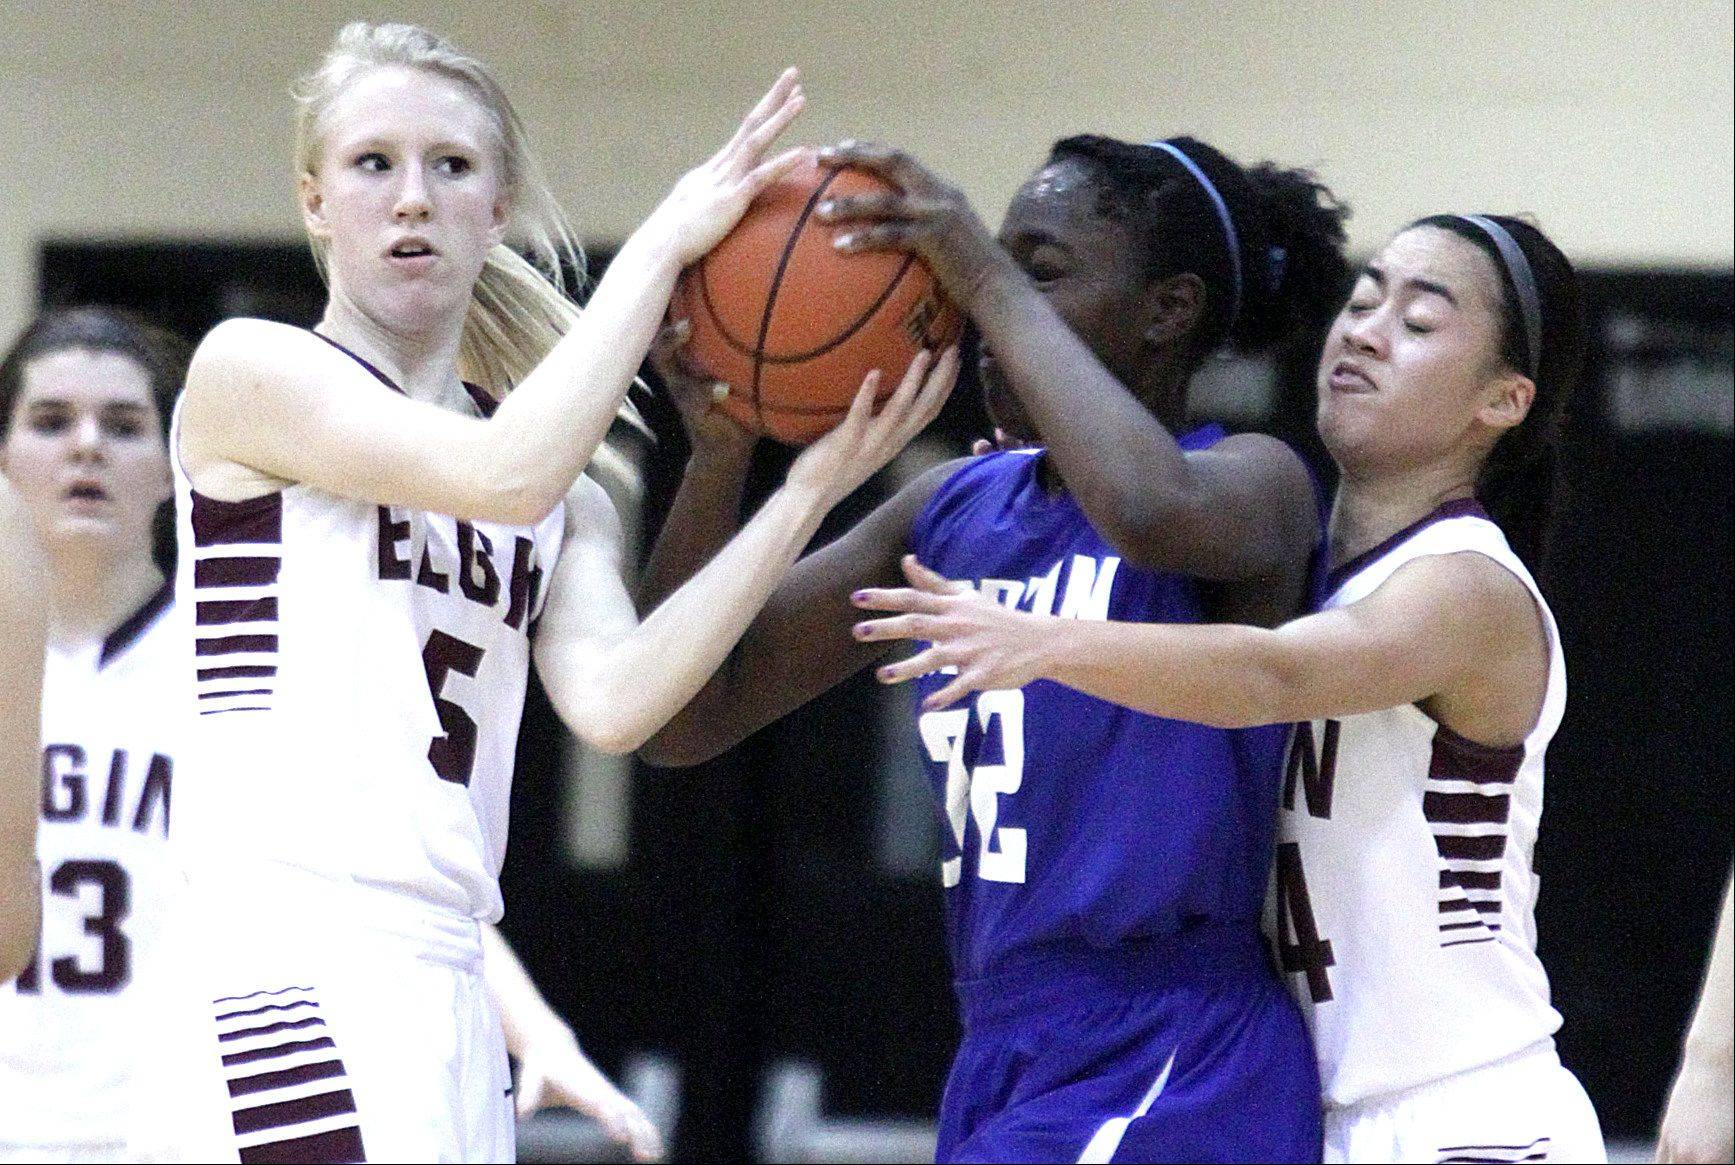 Elgin's Melanie Berg, left, and Kristin Tayag, right, tussle with Larkin's Elizabeth Oladokun, center, for control of the ball during a regional game at Streamwood High School on Monday night.